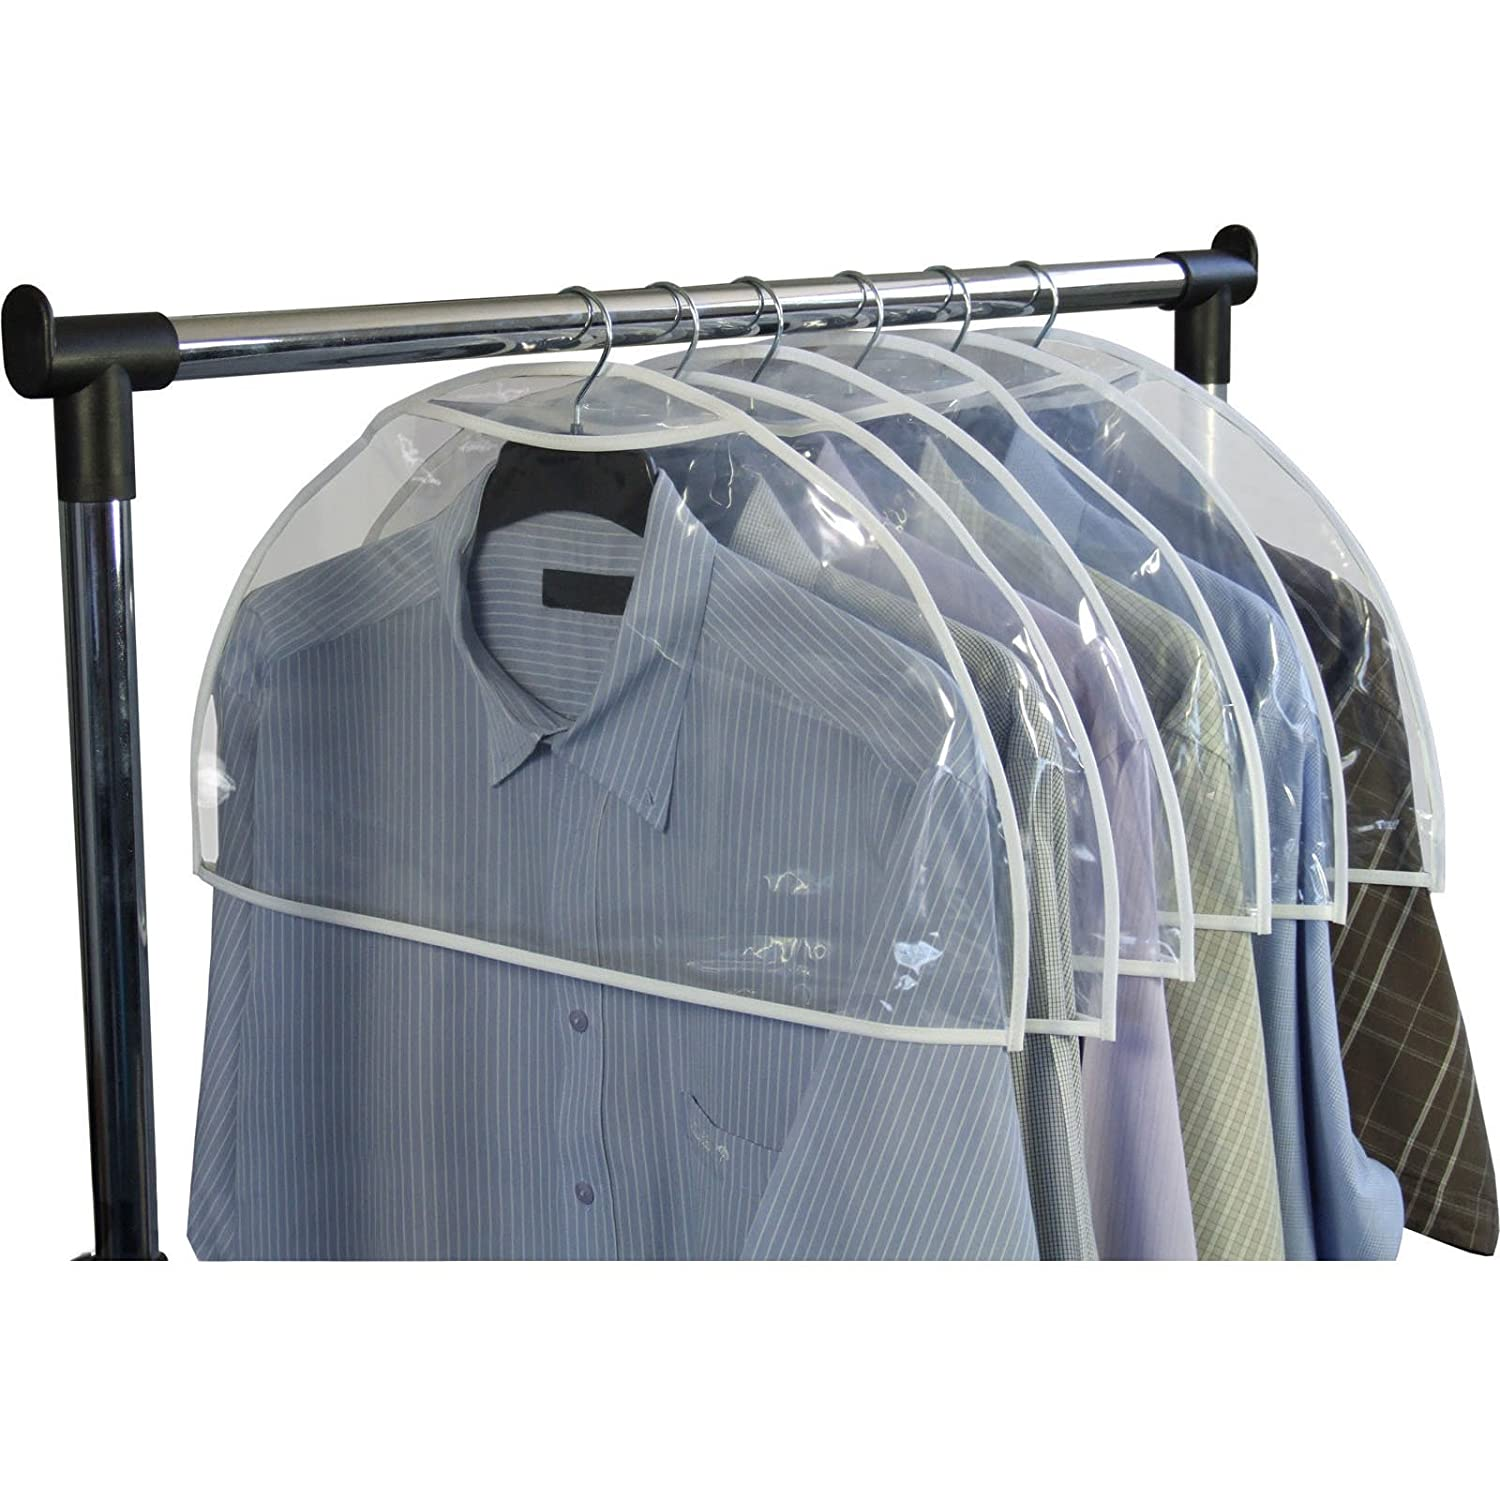 Amazon.com: Hangerworld Pack Of 20 Clear Shoulder Covers   Protect Clothes  From Dust, Dirt U0026 Marking: Home U0026 Kitchen